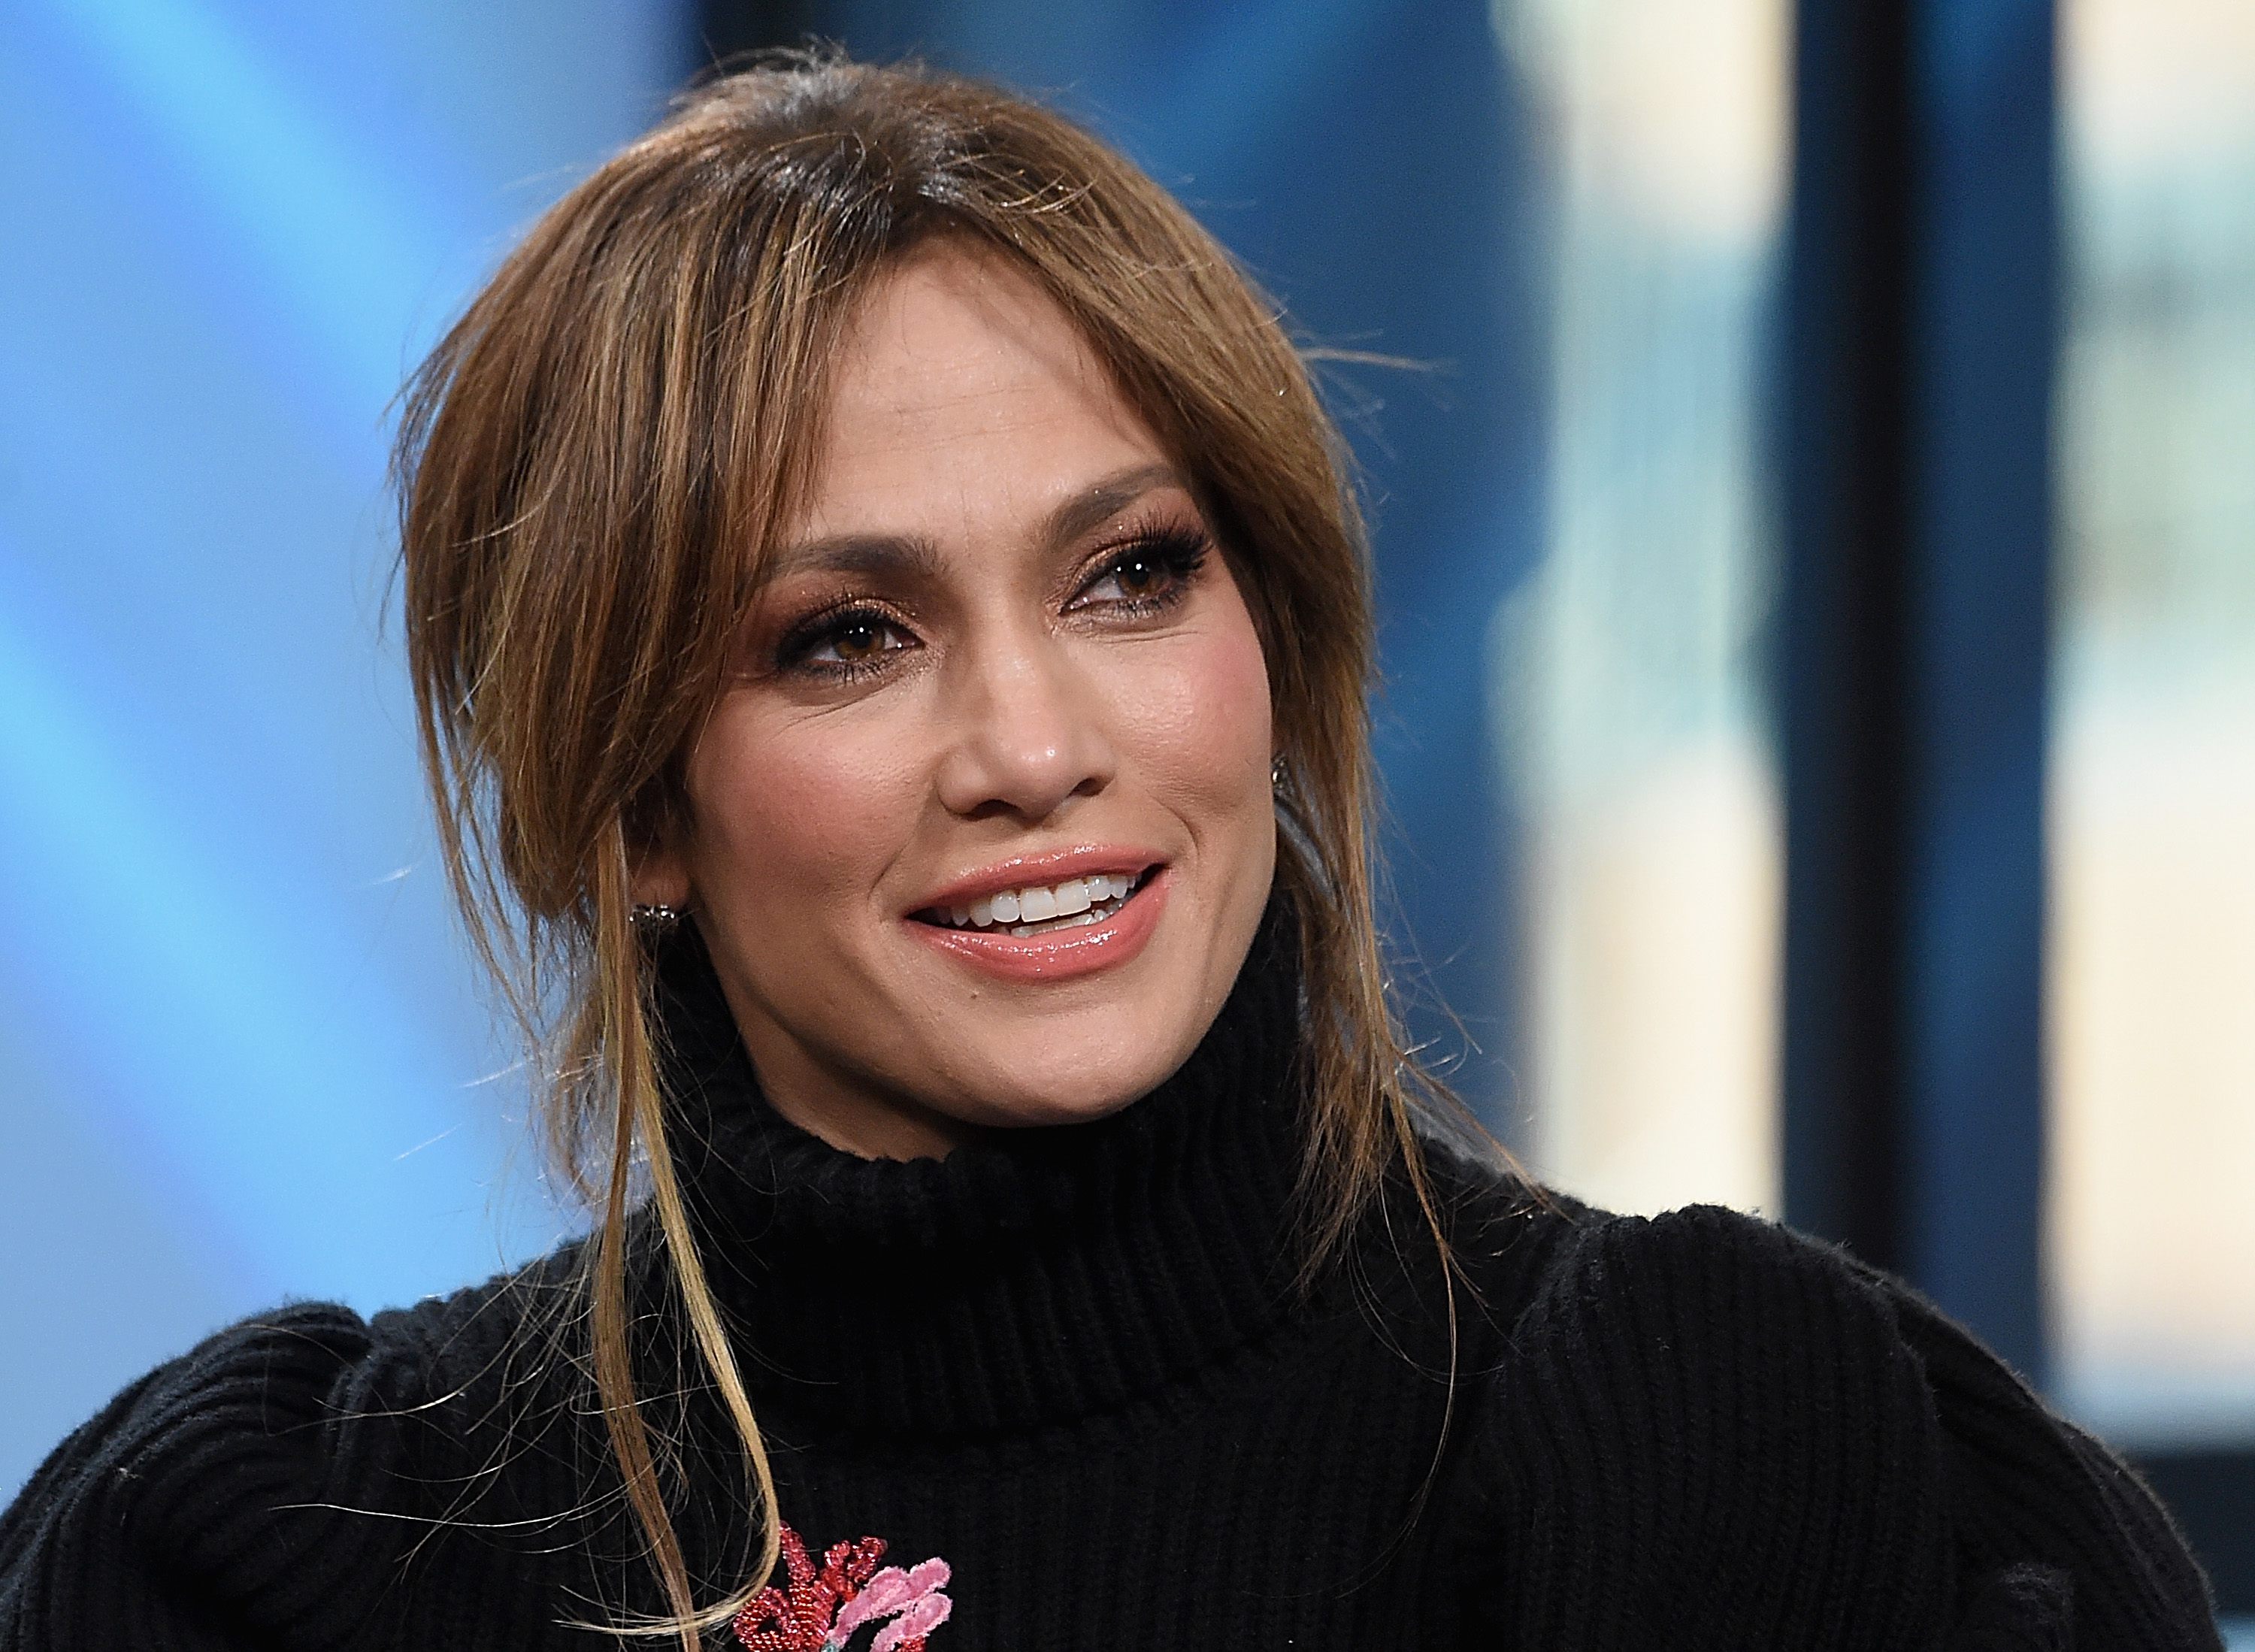 Jennifer Lopez's reaction to a director telling her to take her top off is going viral